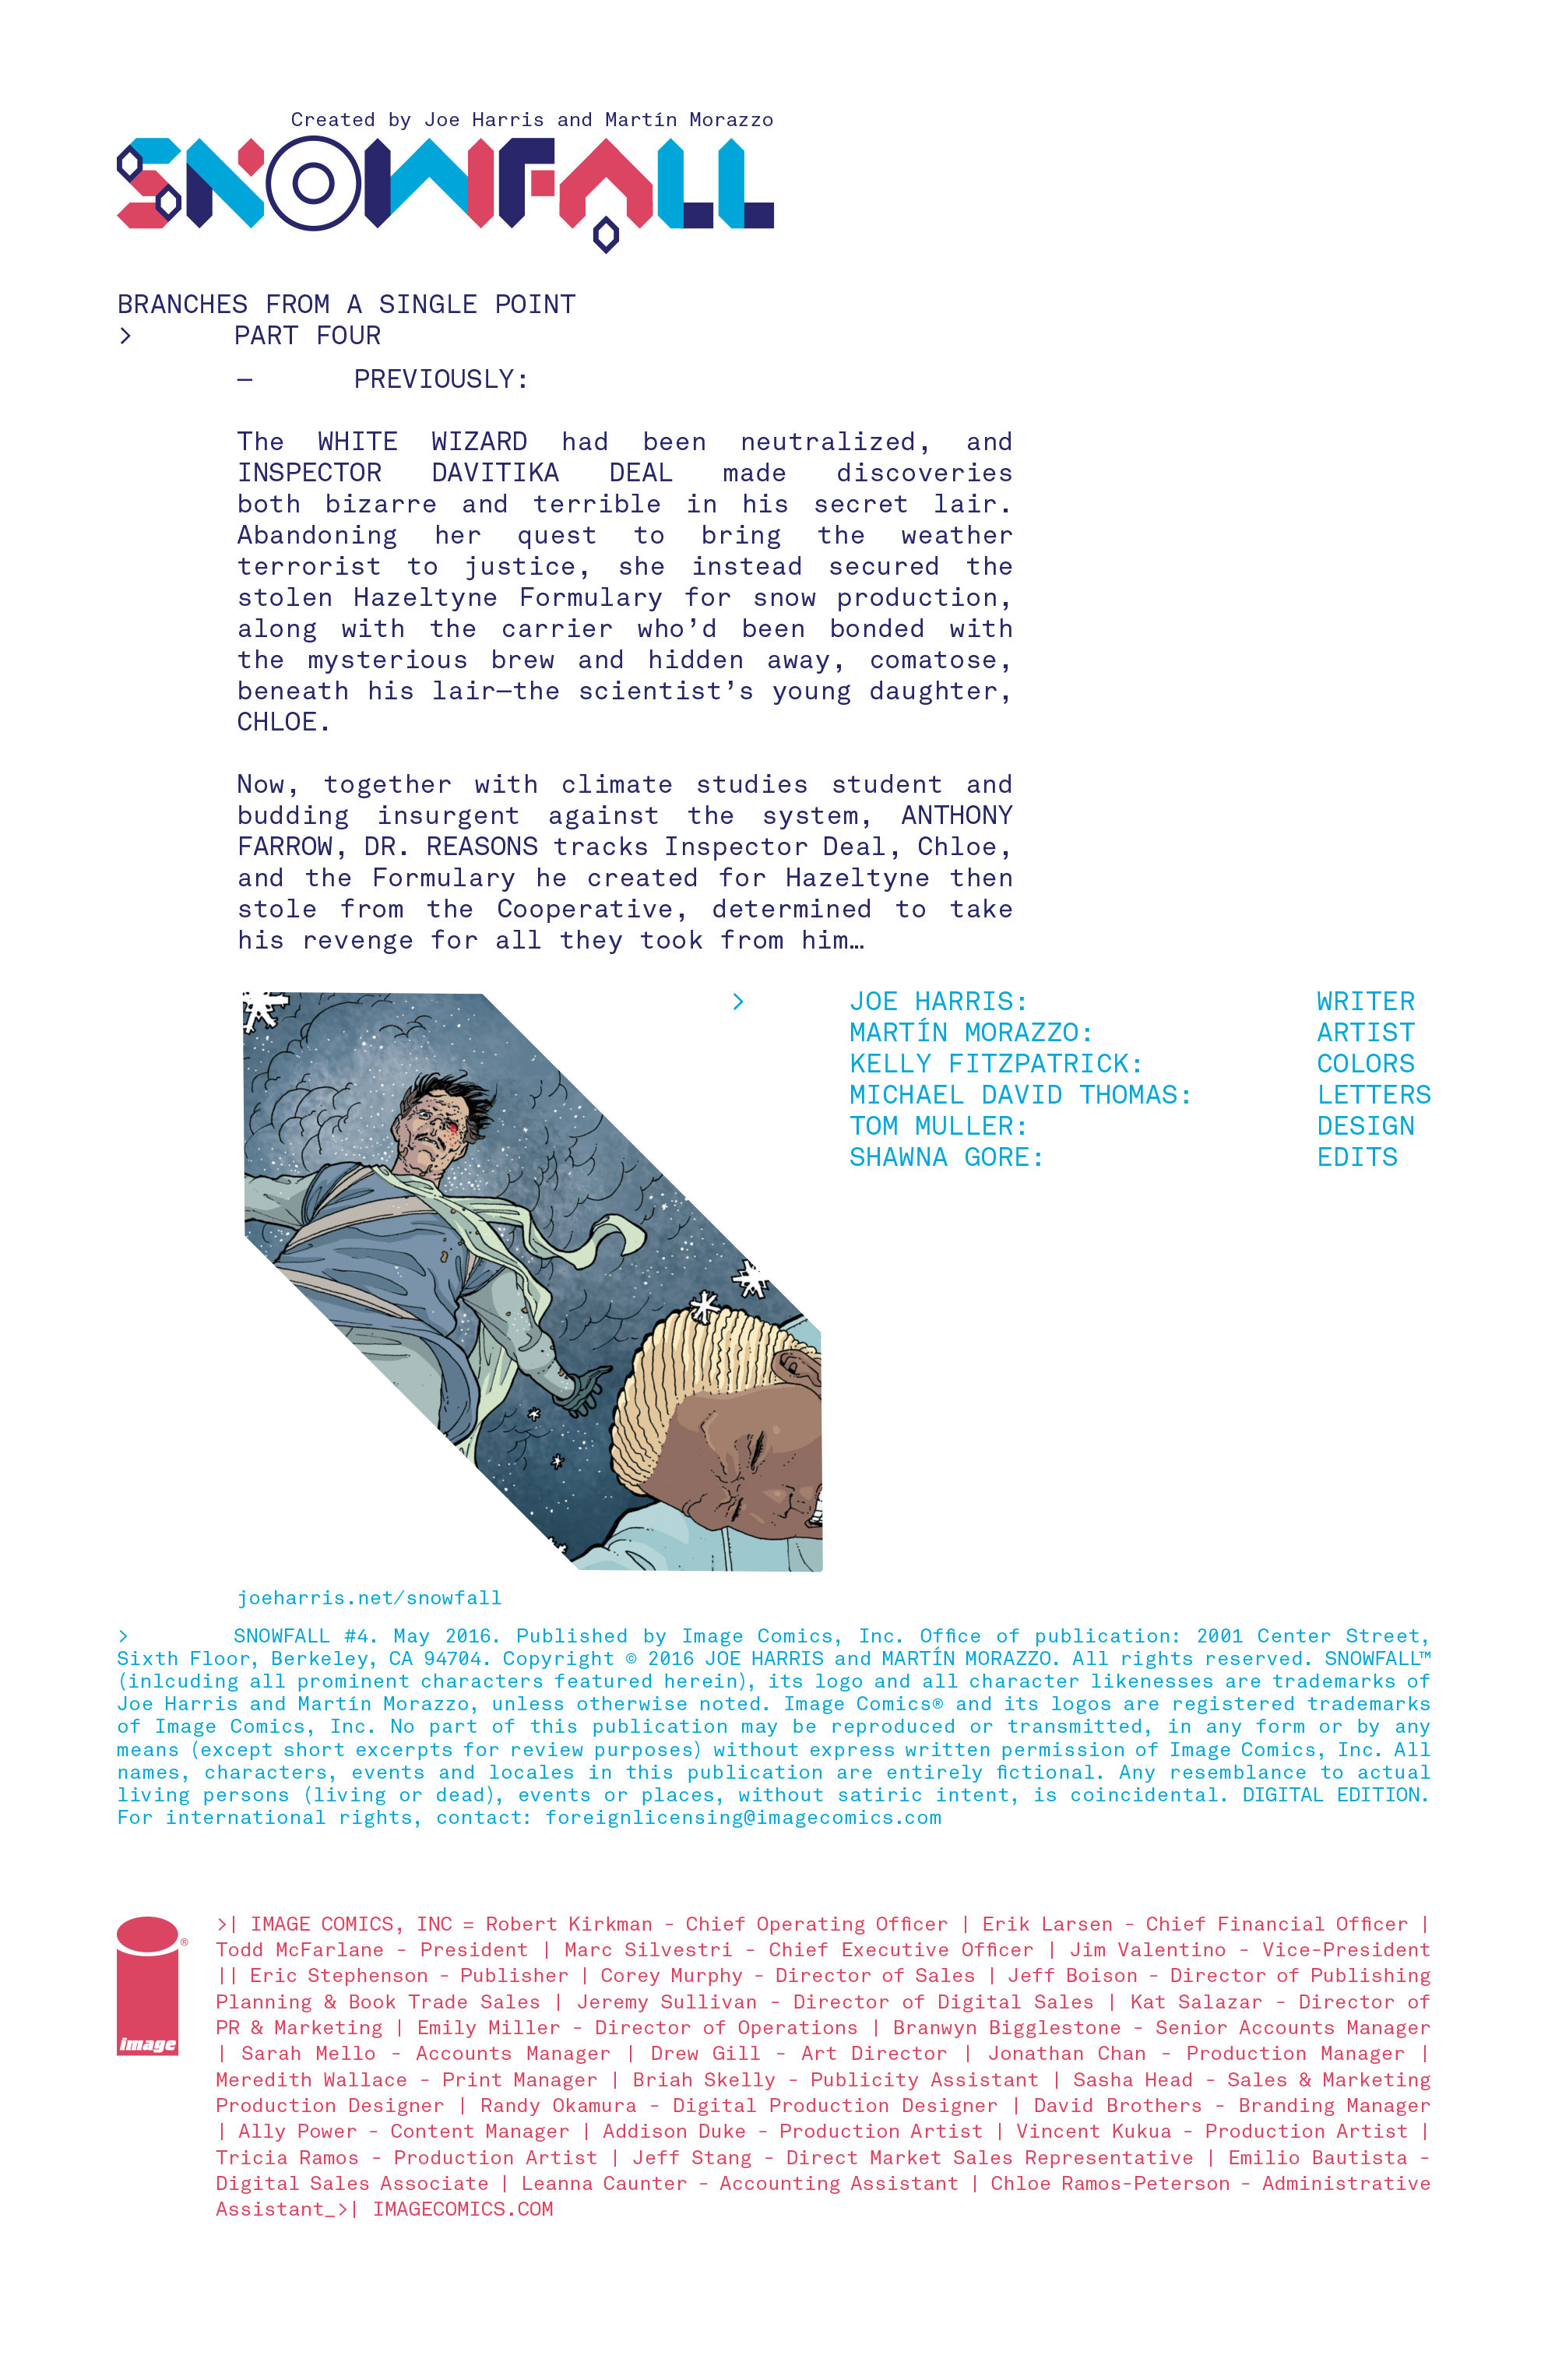 Read online Snowfall comic -  Issue #4 - 2